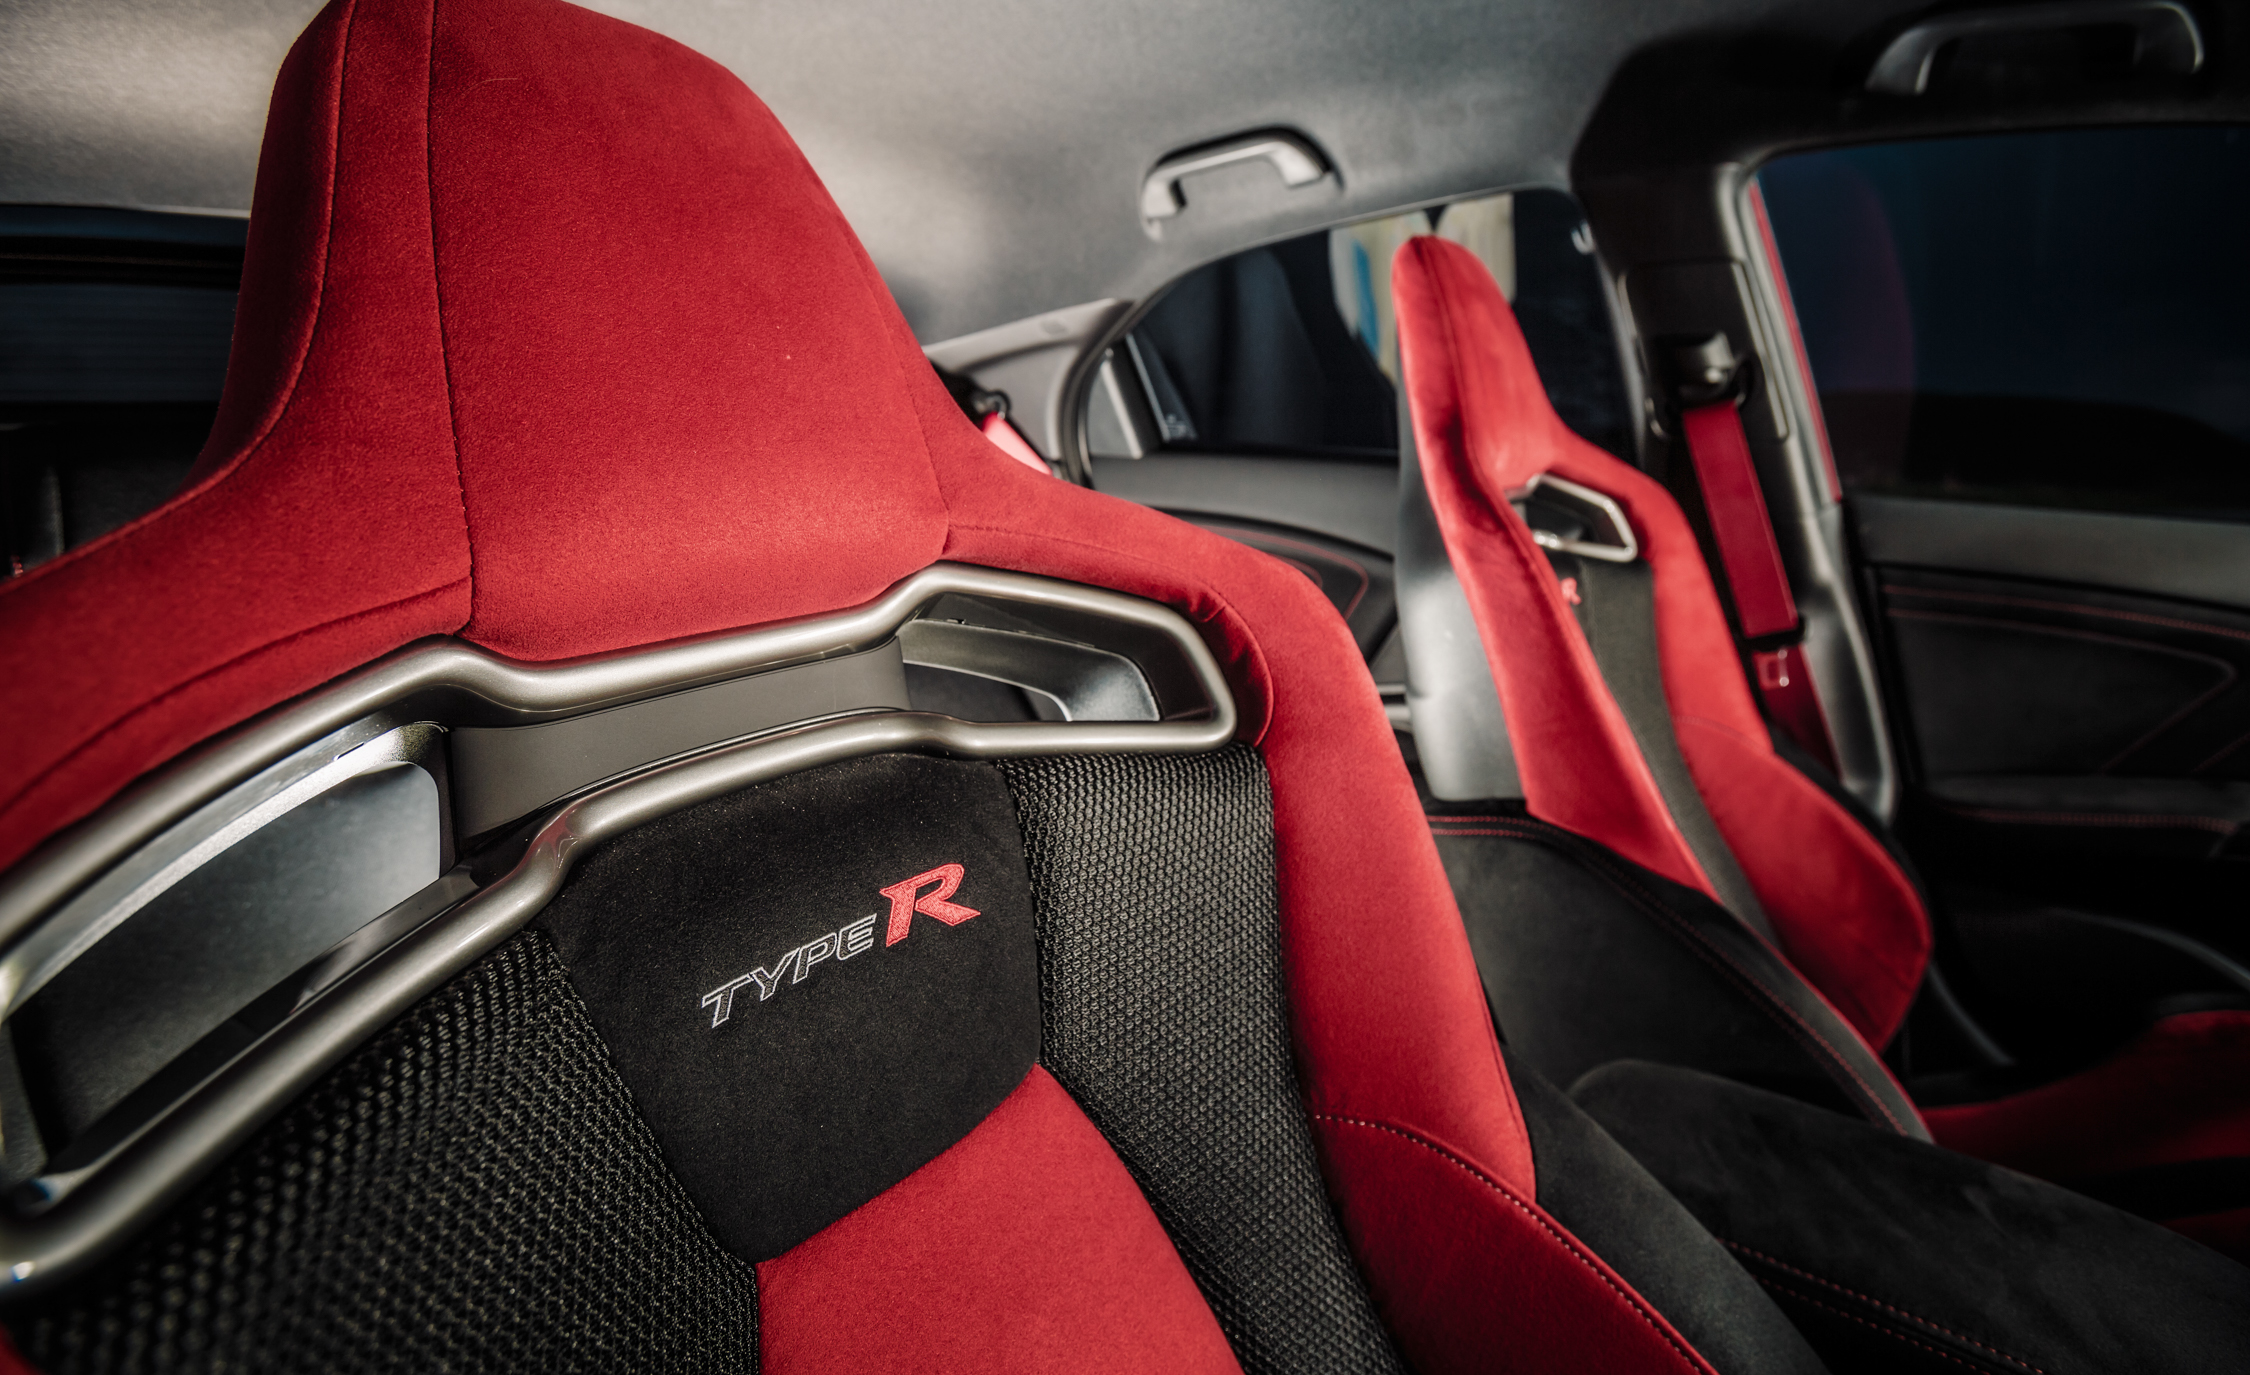 2016 Civic Type R Price >> 2015 Honda Civic Type R Overview #9196 | Cars Performance, Reviews, and Test Drive